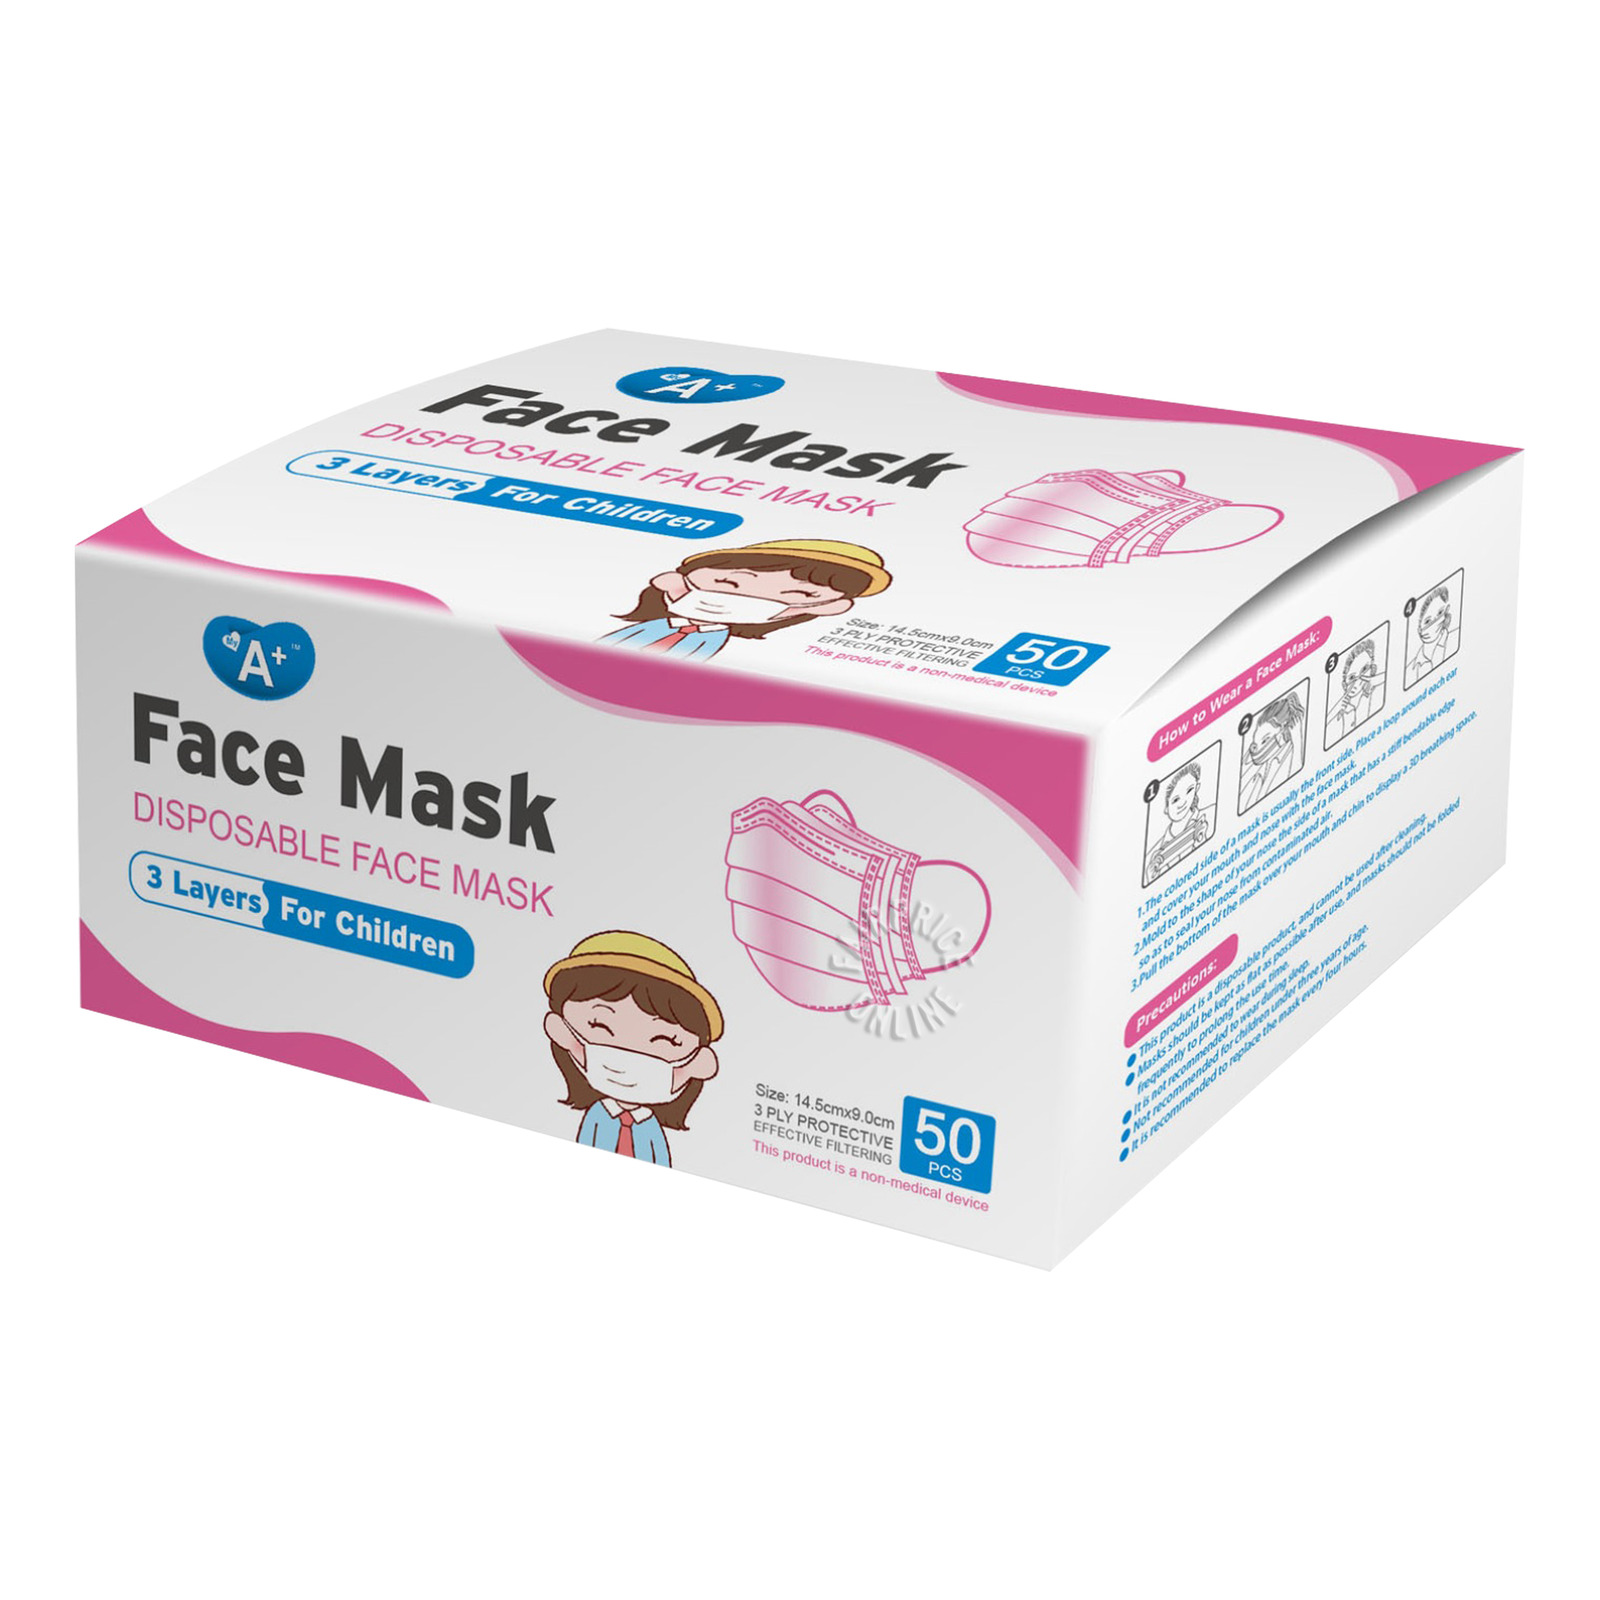 A+ Disposable Face Mask For Children - Pink